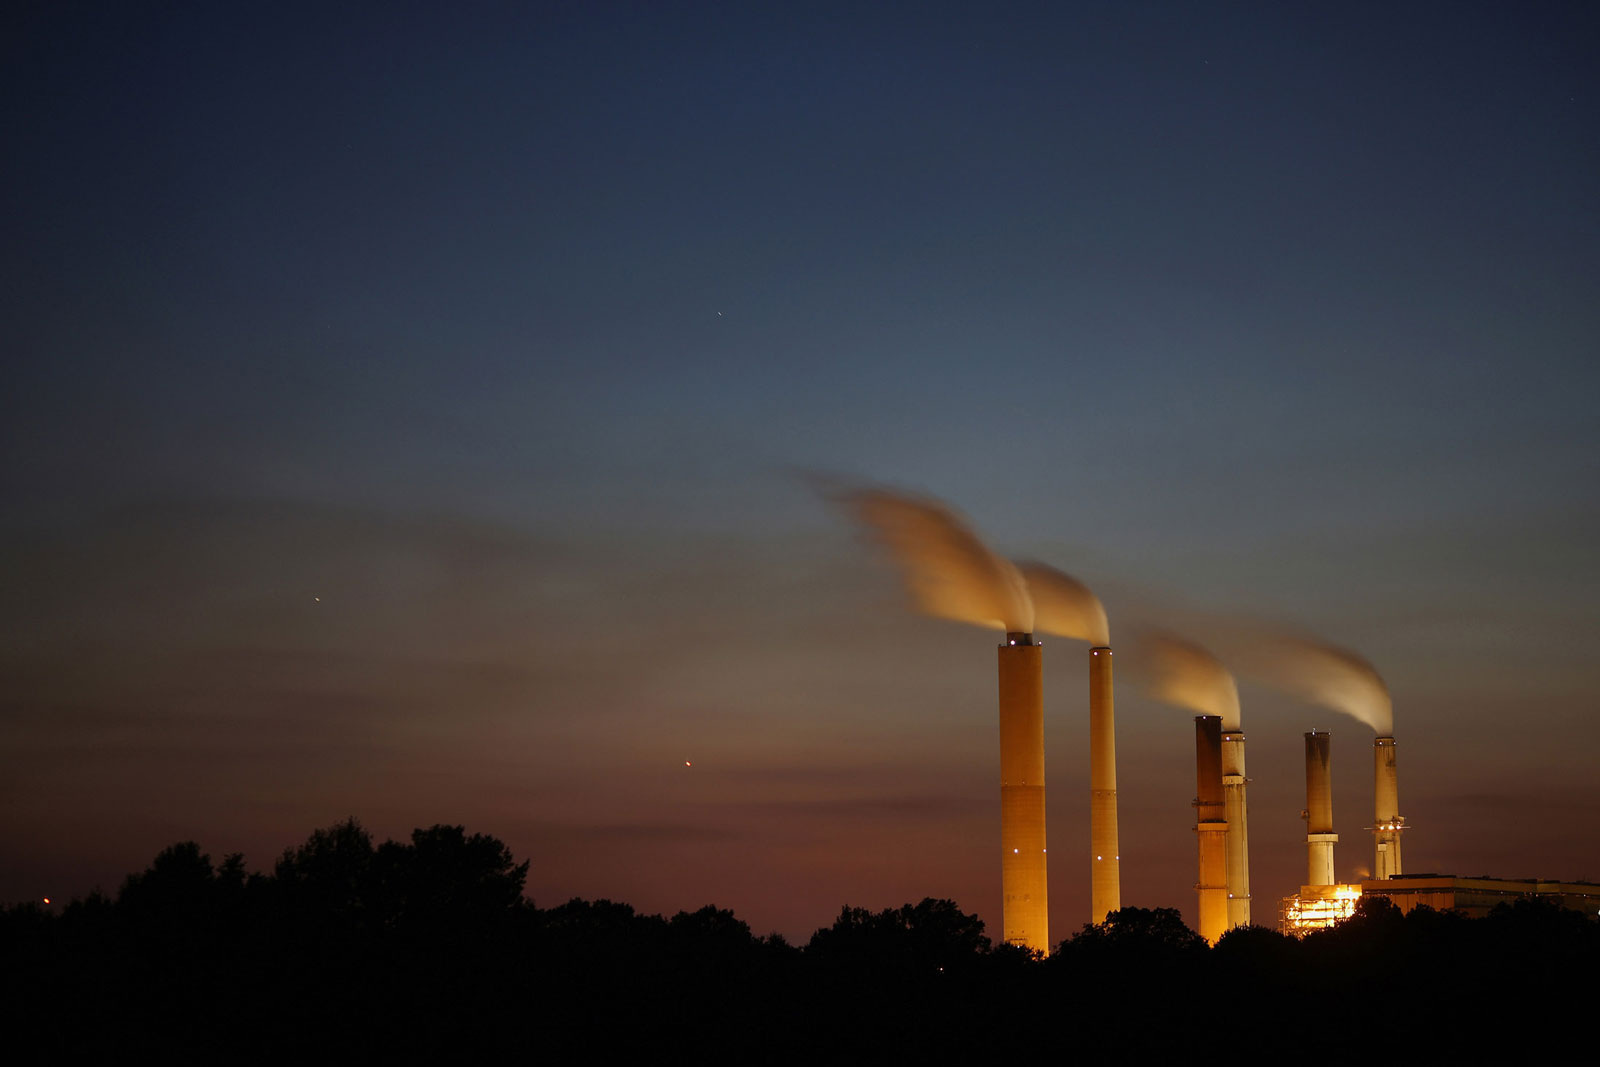 Emissions rise from stacks at the Duke Energy Gibson Station power plant at dusk in Owensville, Ind., U.S.